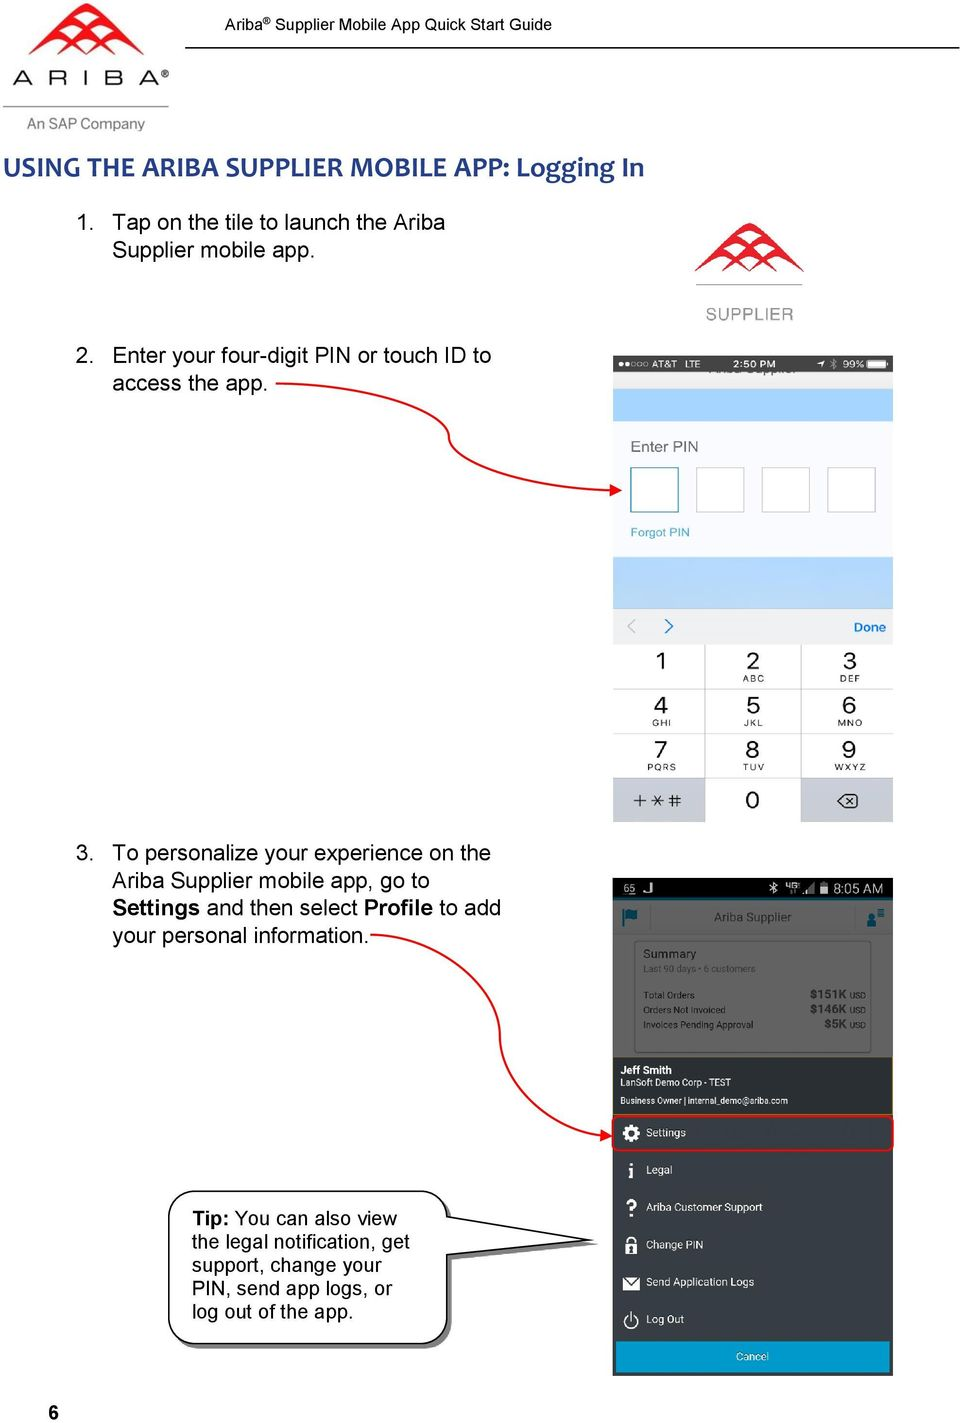 To personalize your experience on the Ariba Supplier mobile app, go to Settings and then select Profile to